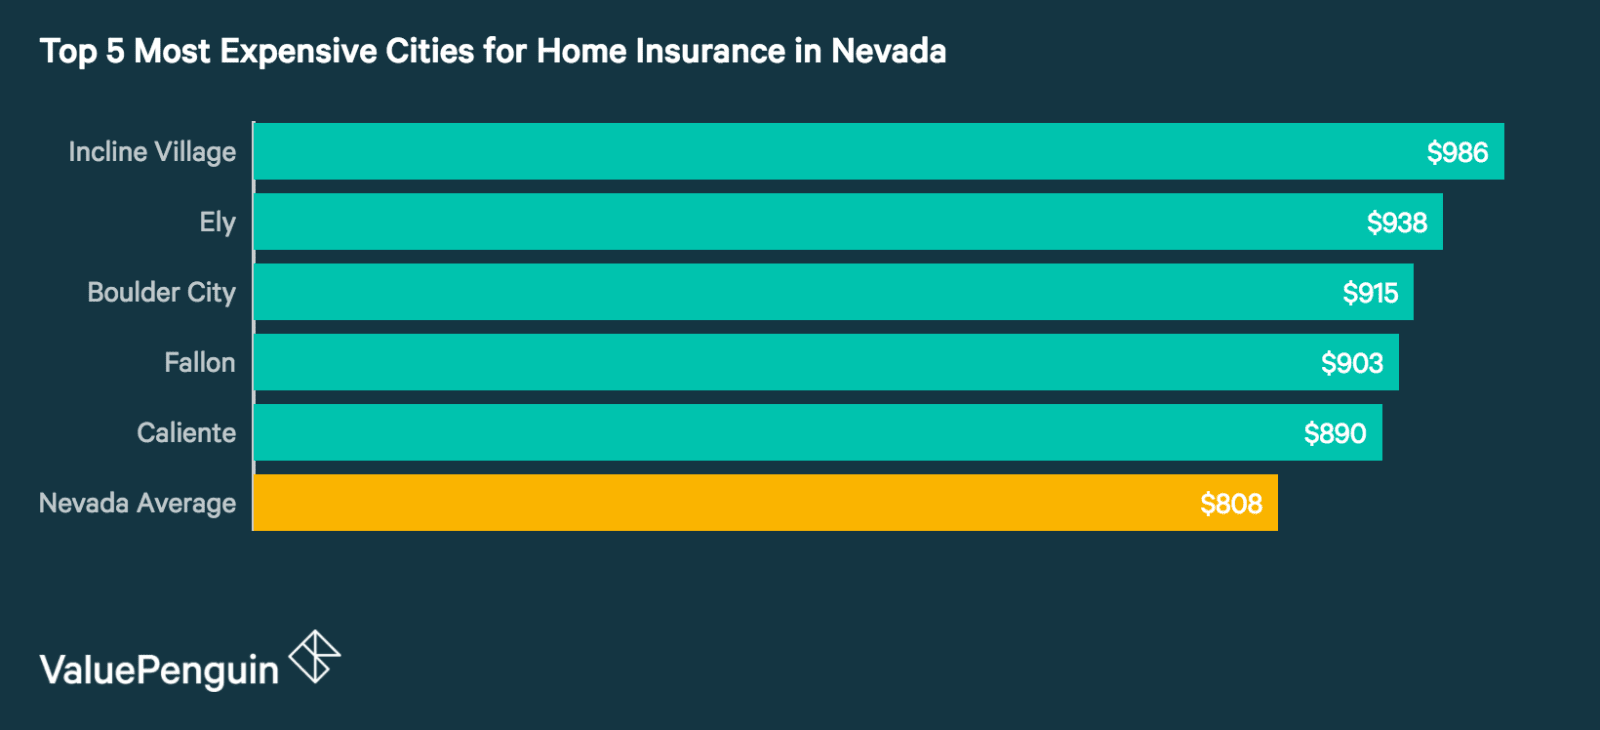 Top 5 Most Expensive Cities in Nevada for Homeowners Insurance